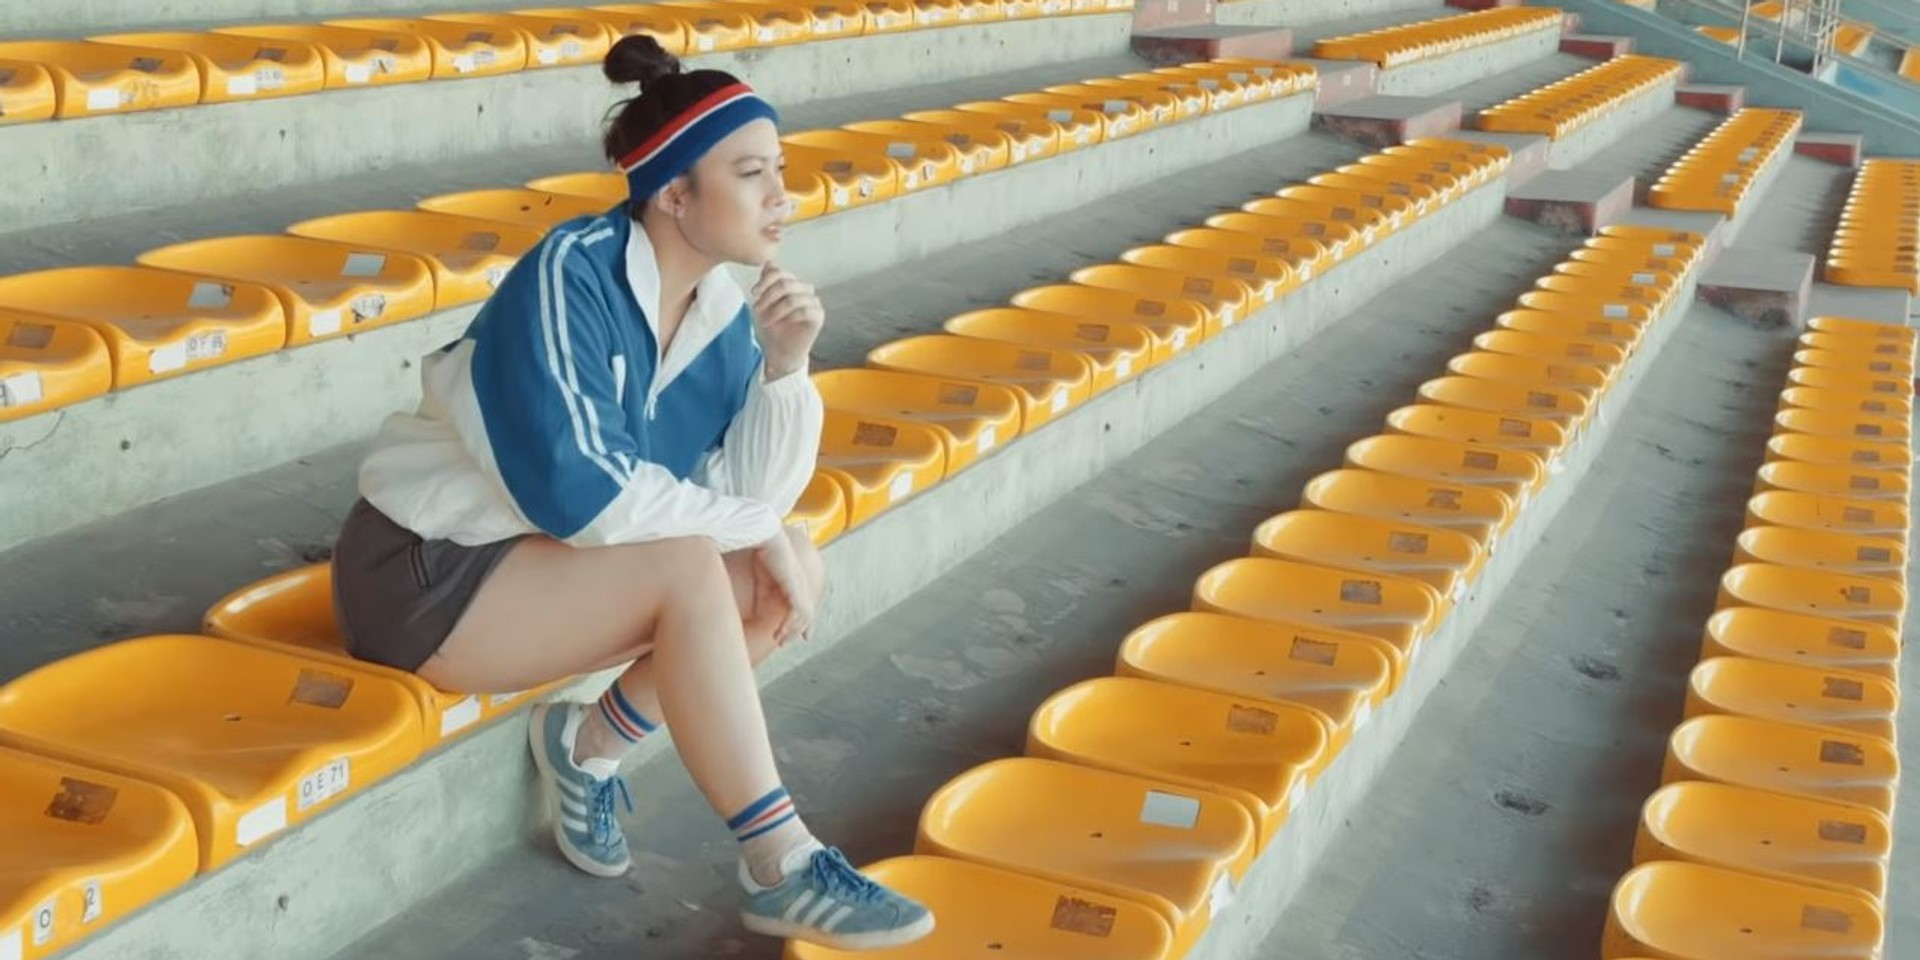 Reese Lansangan hits the running track in 'The Chase' music video – watch